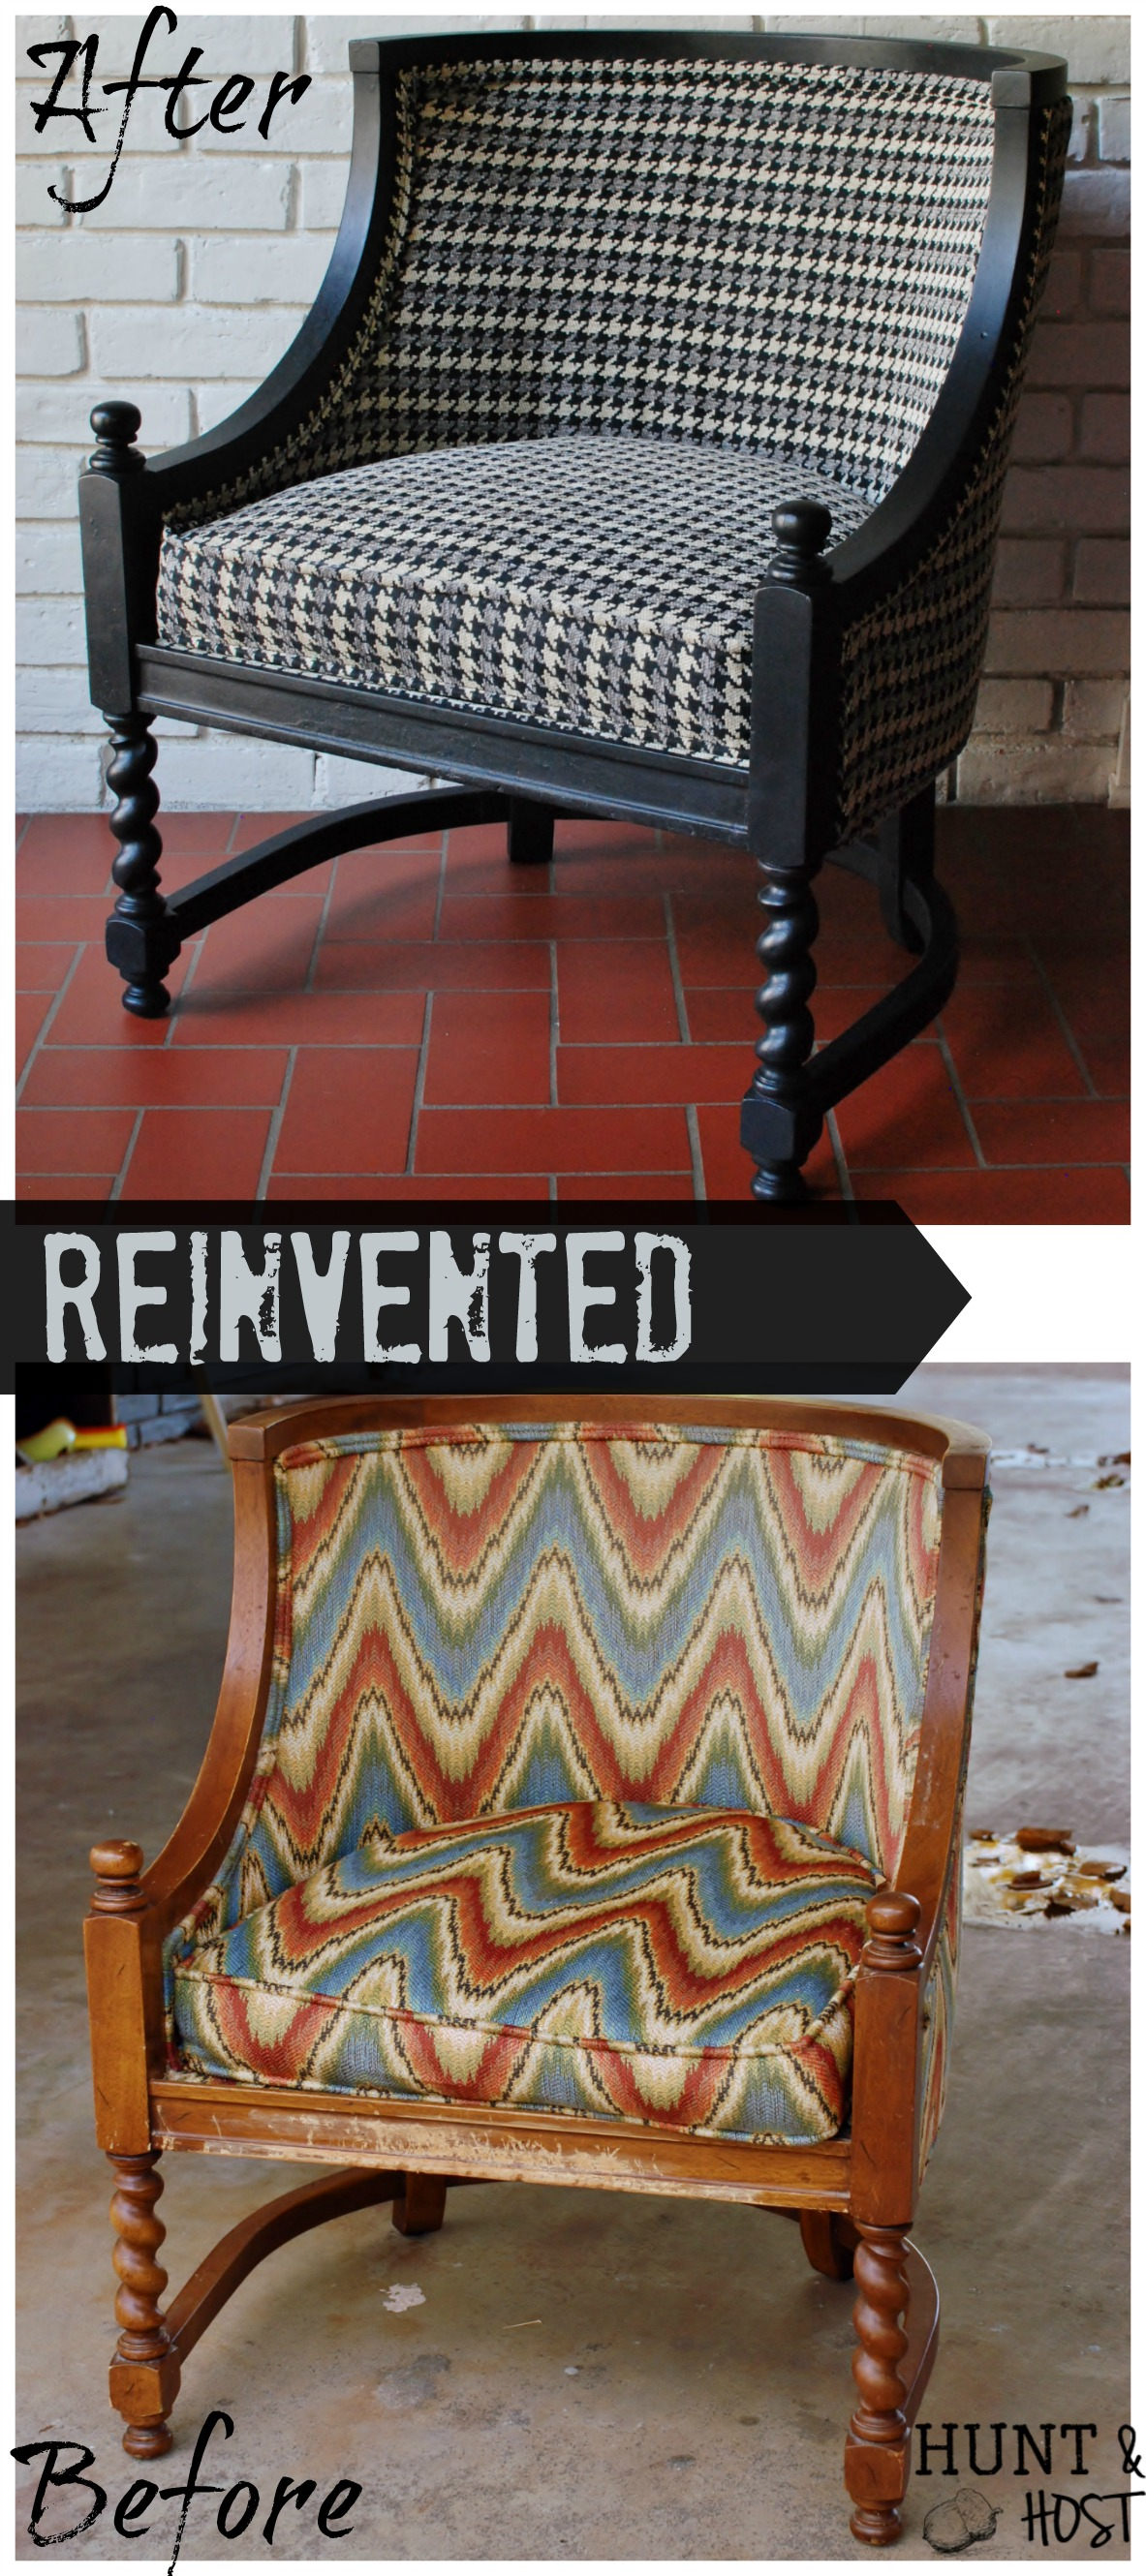 Houndstooth chair brown - Houndstooth Chair Makeover By Me